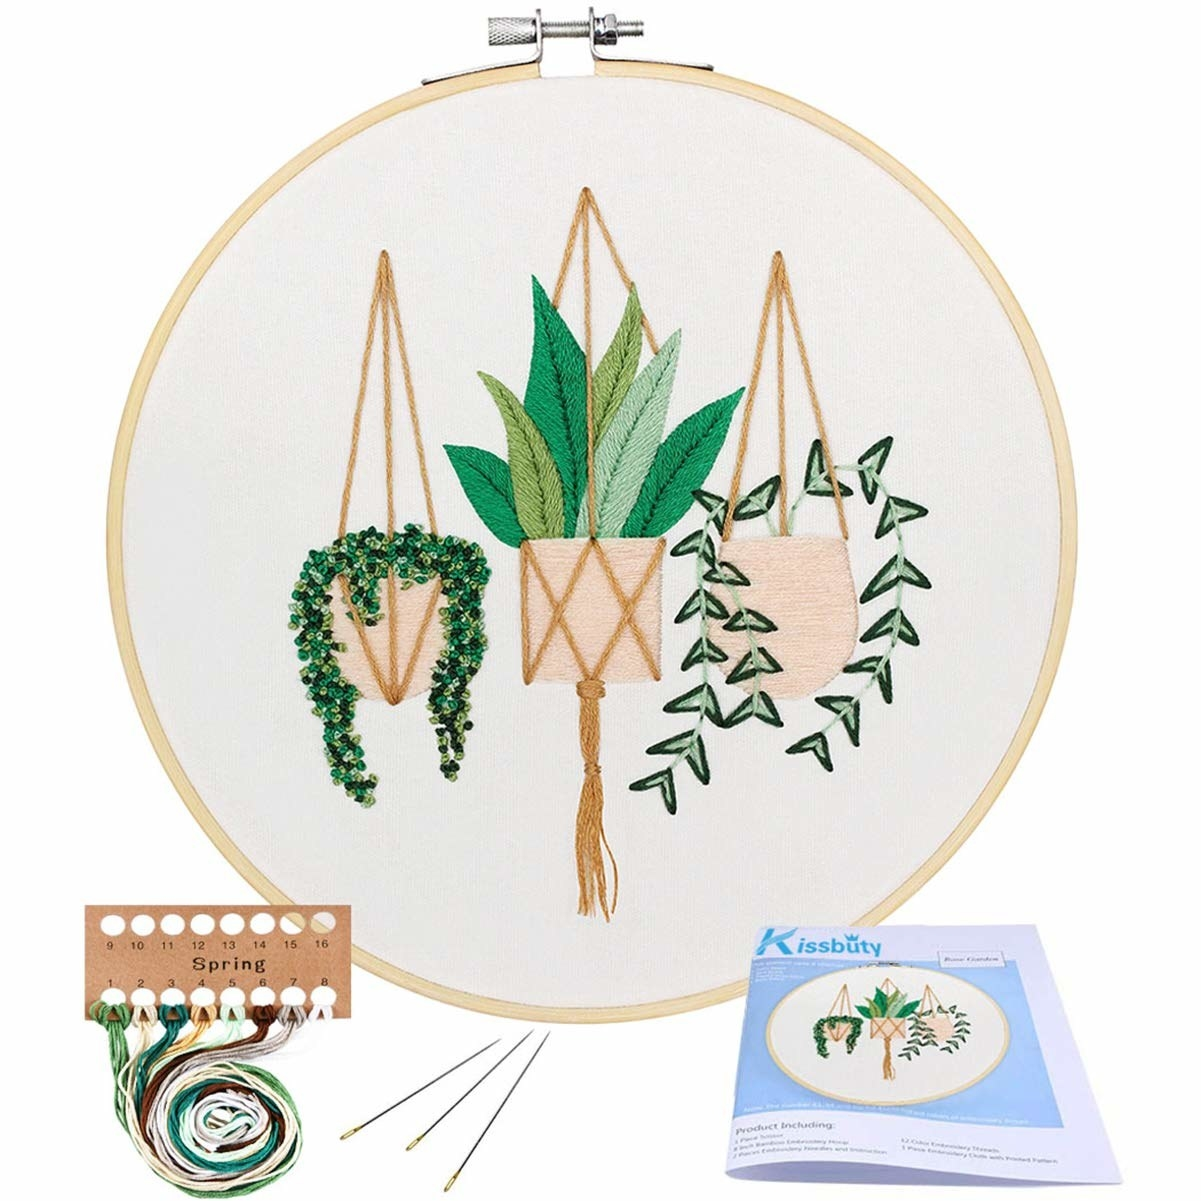 The kit, which looks like three hanging plants when finished